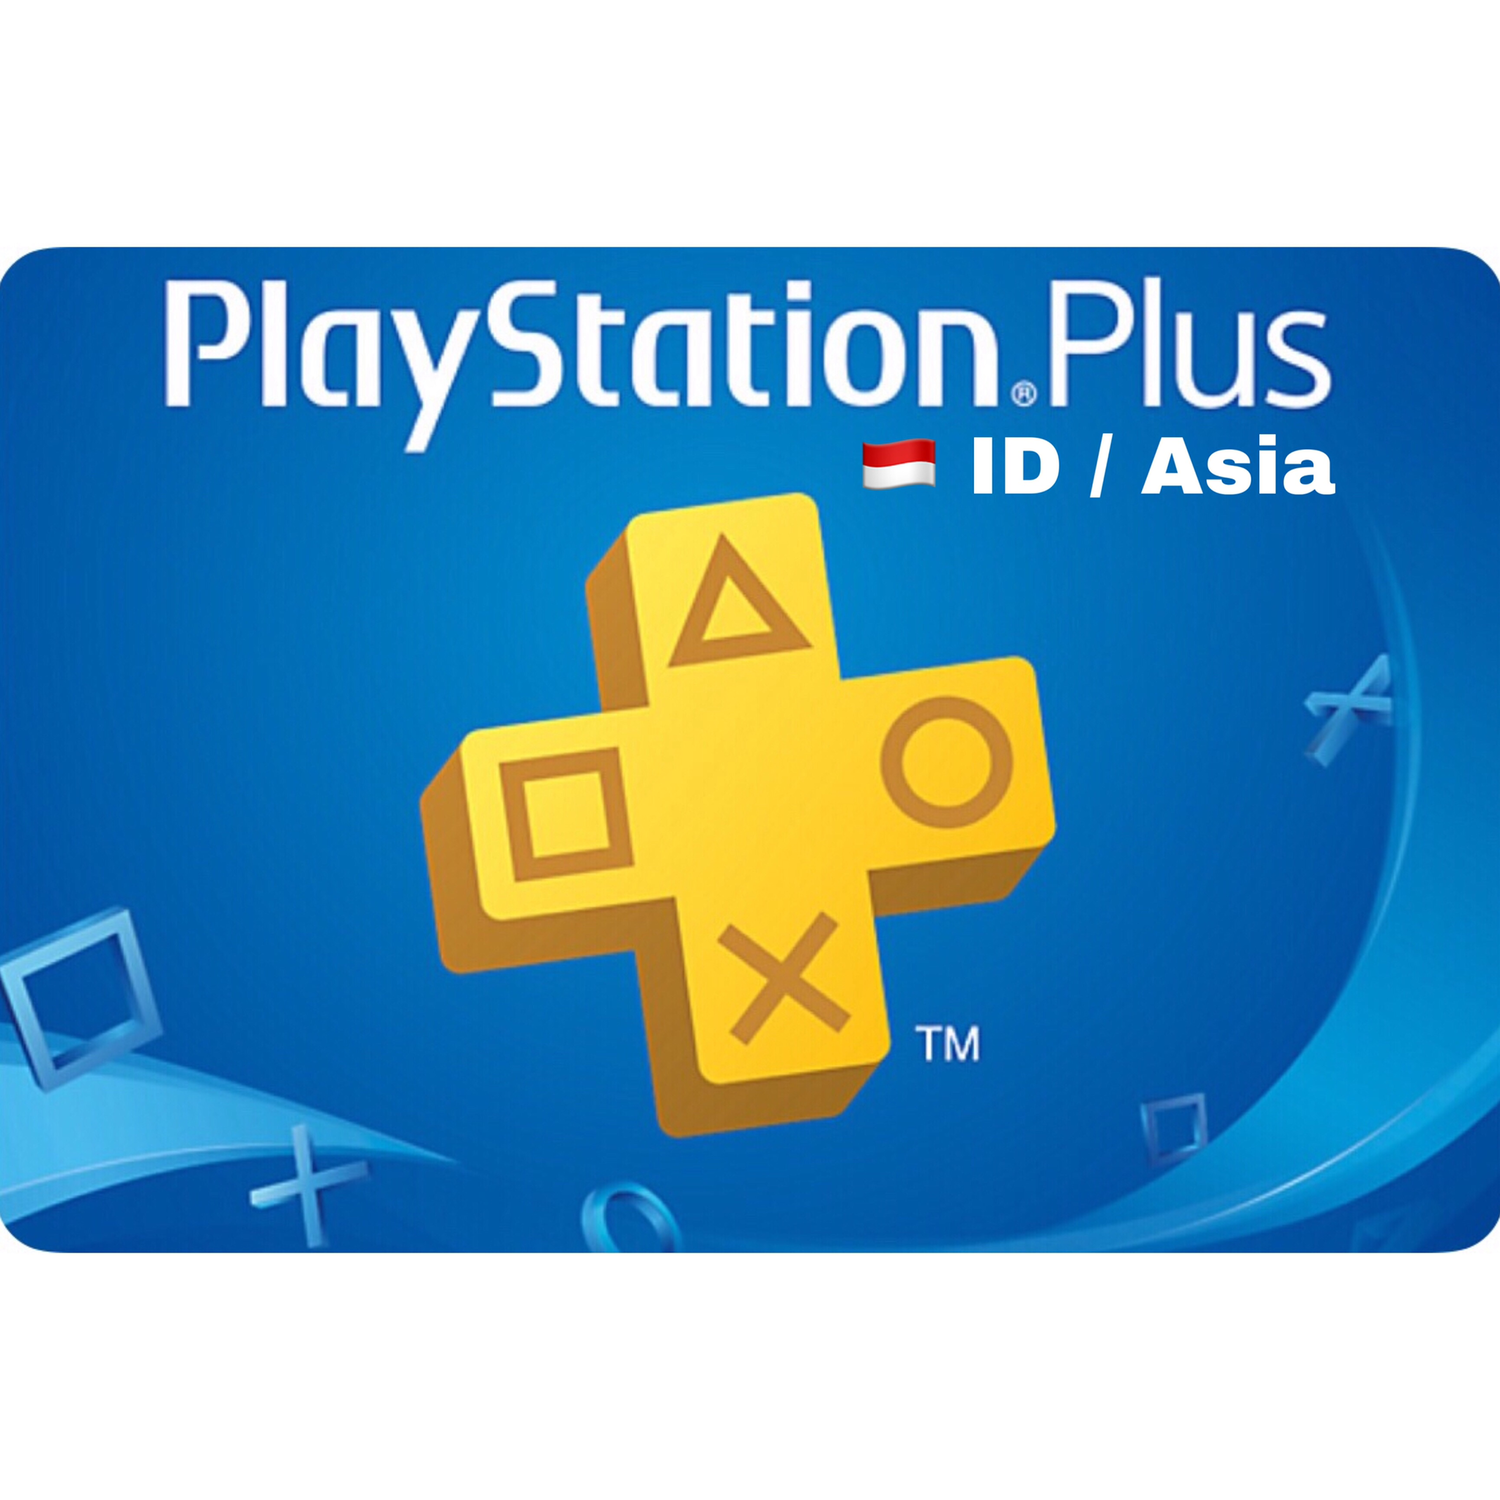 PSN Plus Cards - Playstation Plus Indonesia / Asia 3 ,12 Months Membership